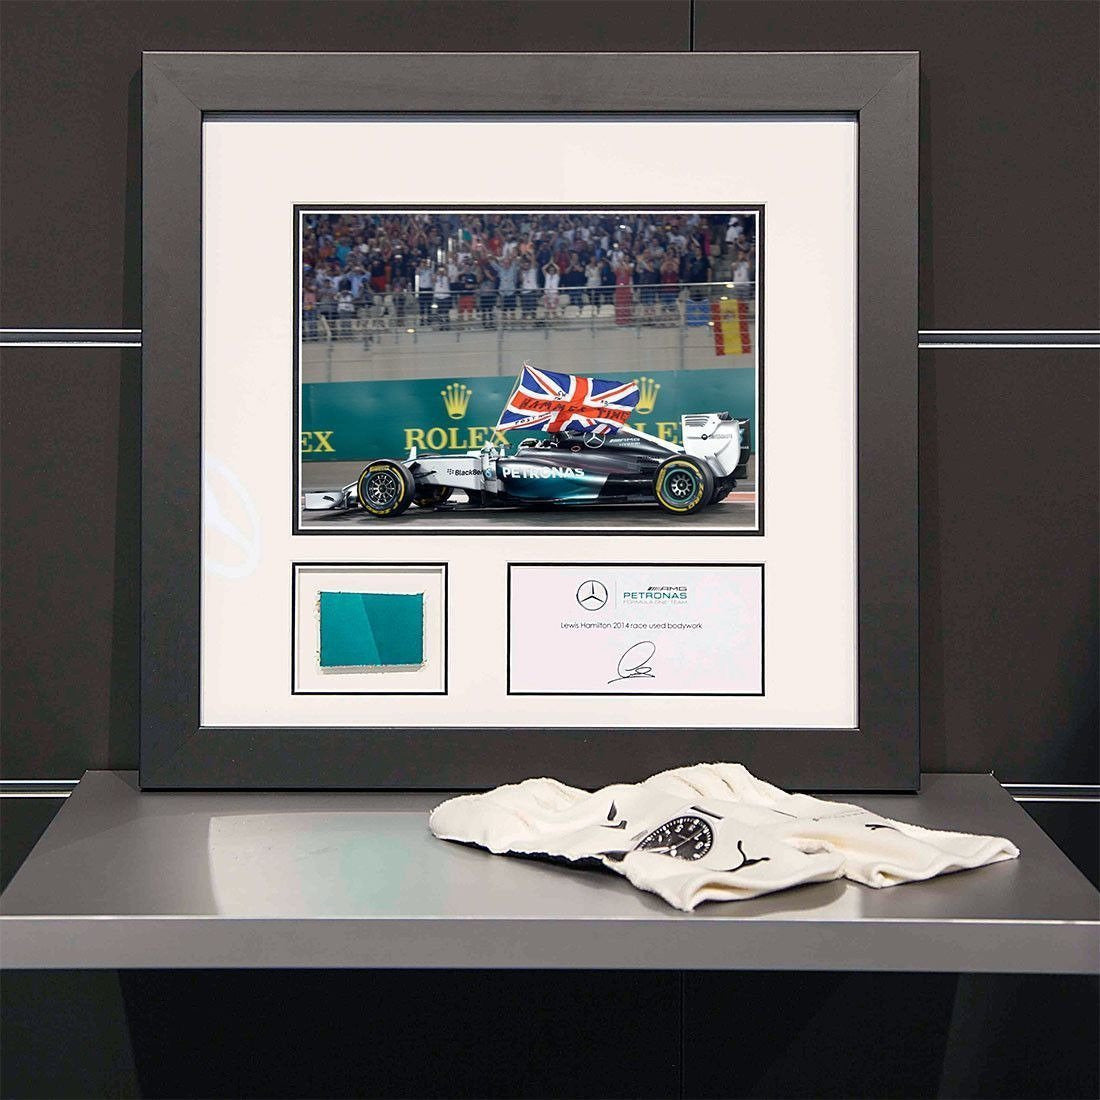 eb76150c401 Mercedes Benz AMG F1 Lewis Hamilton Abu Dhabi GP   Piece of Car Bodywork. Mercedes  Benz AMG F1 Lewis Hamilton Abu Dhabi GP   Piece of Car Bodywork